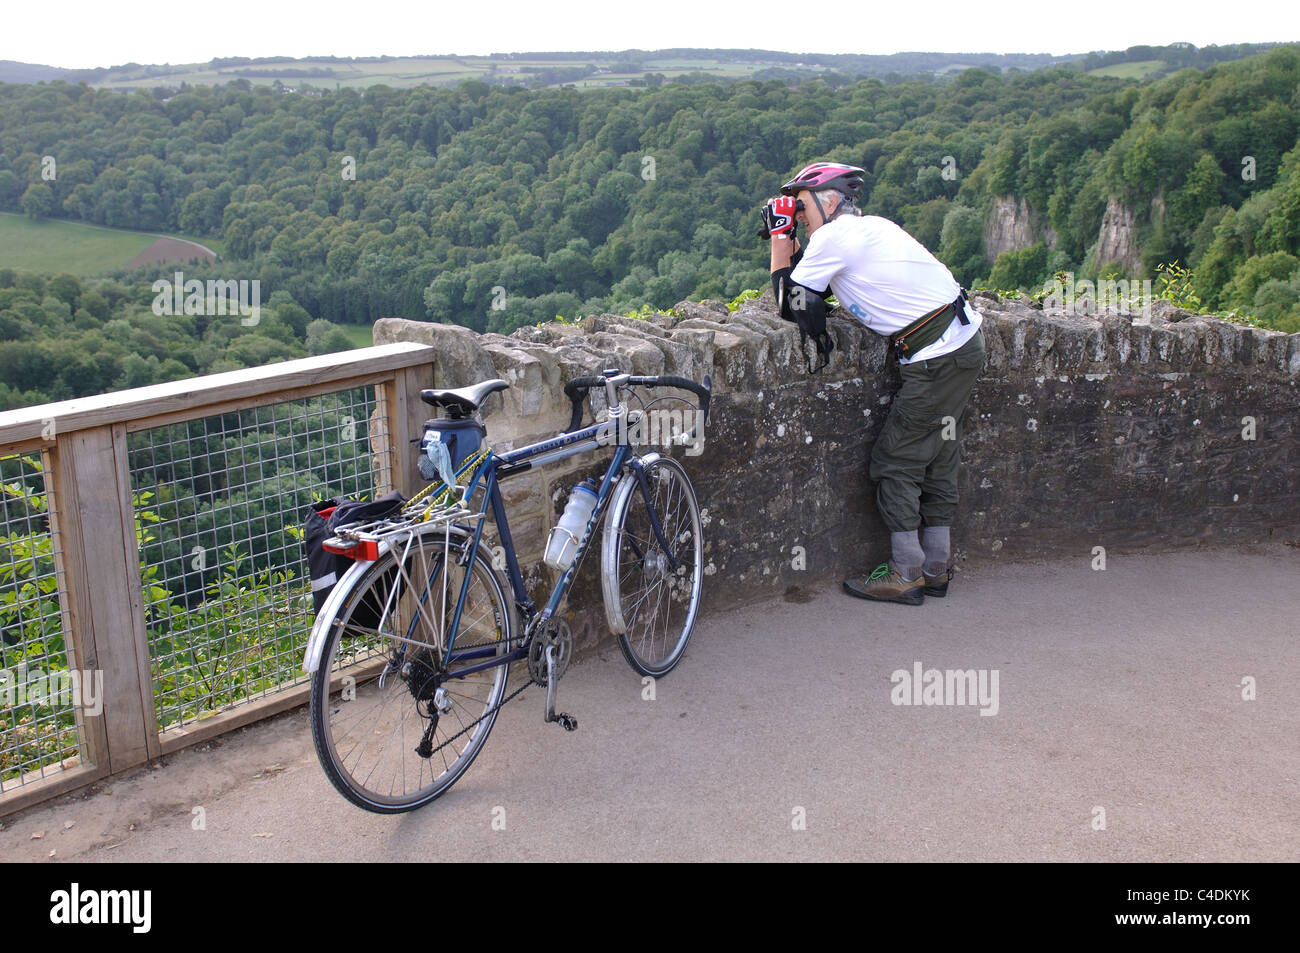 Cyclist on Yat Rock looking through binoculars - Stock Image